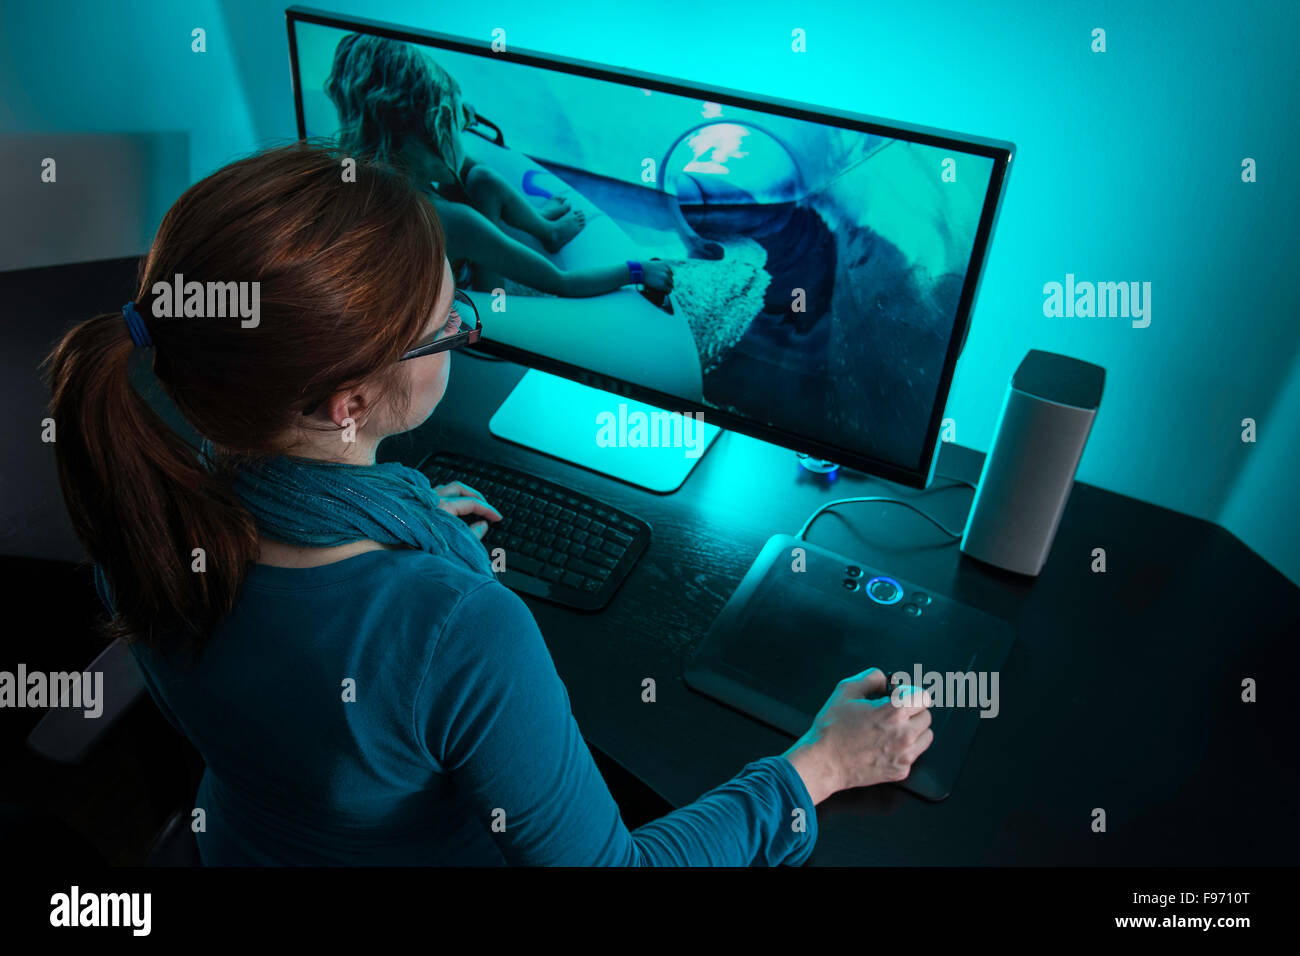 Woman (35) editing photography on a desktop PC in her home office. - Stock Image